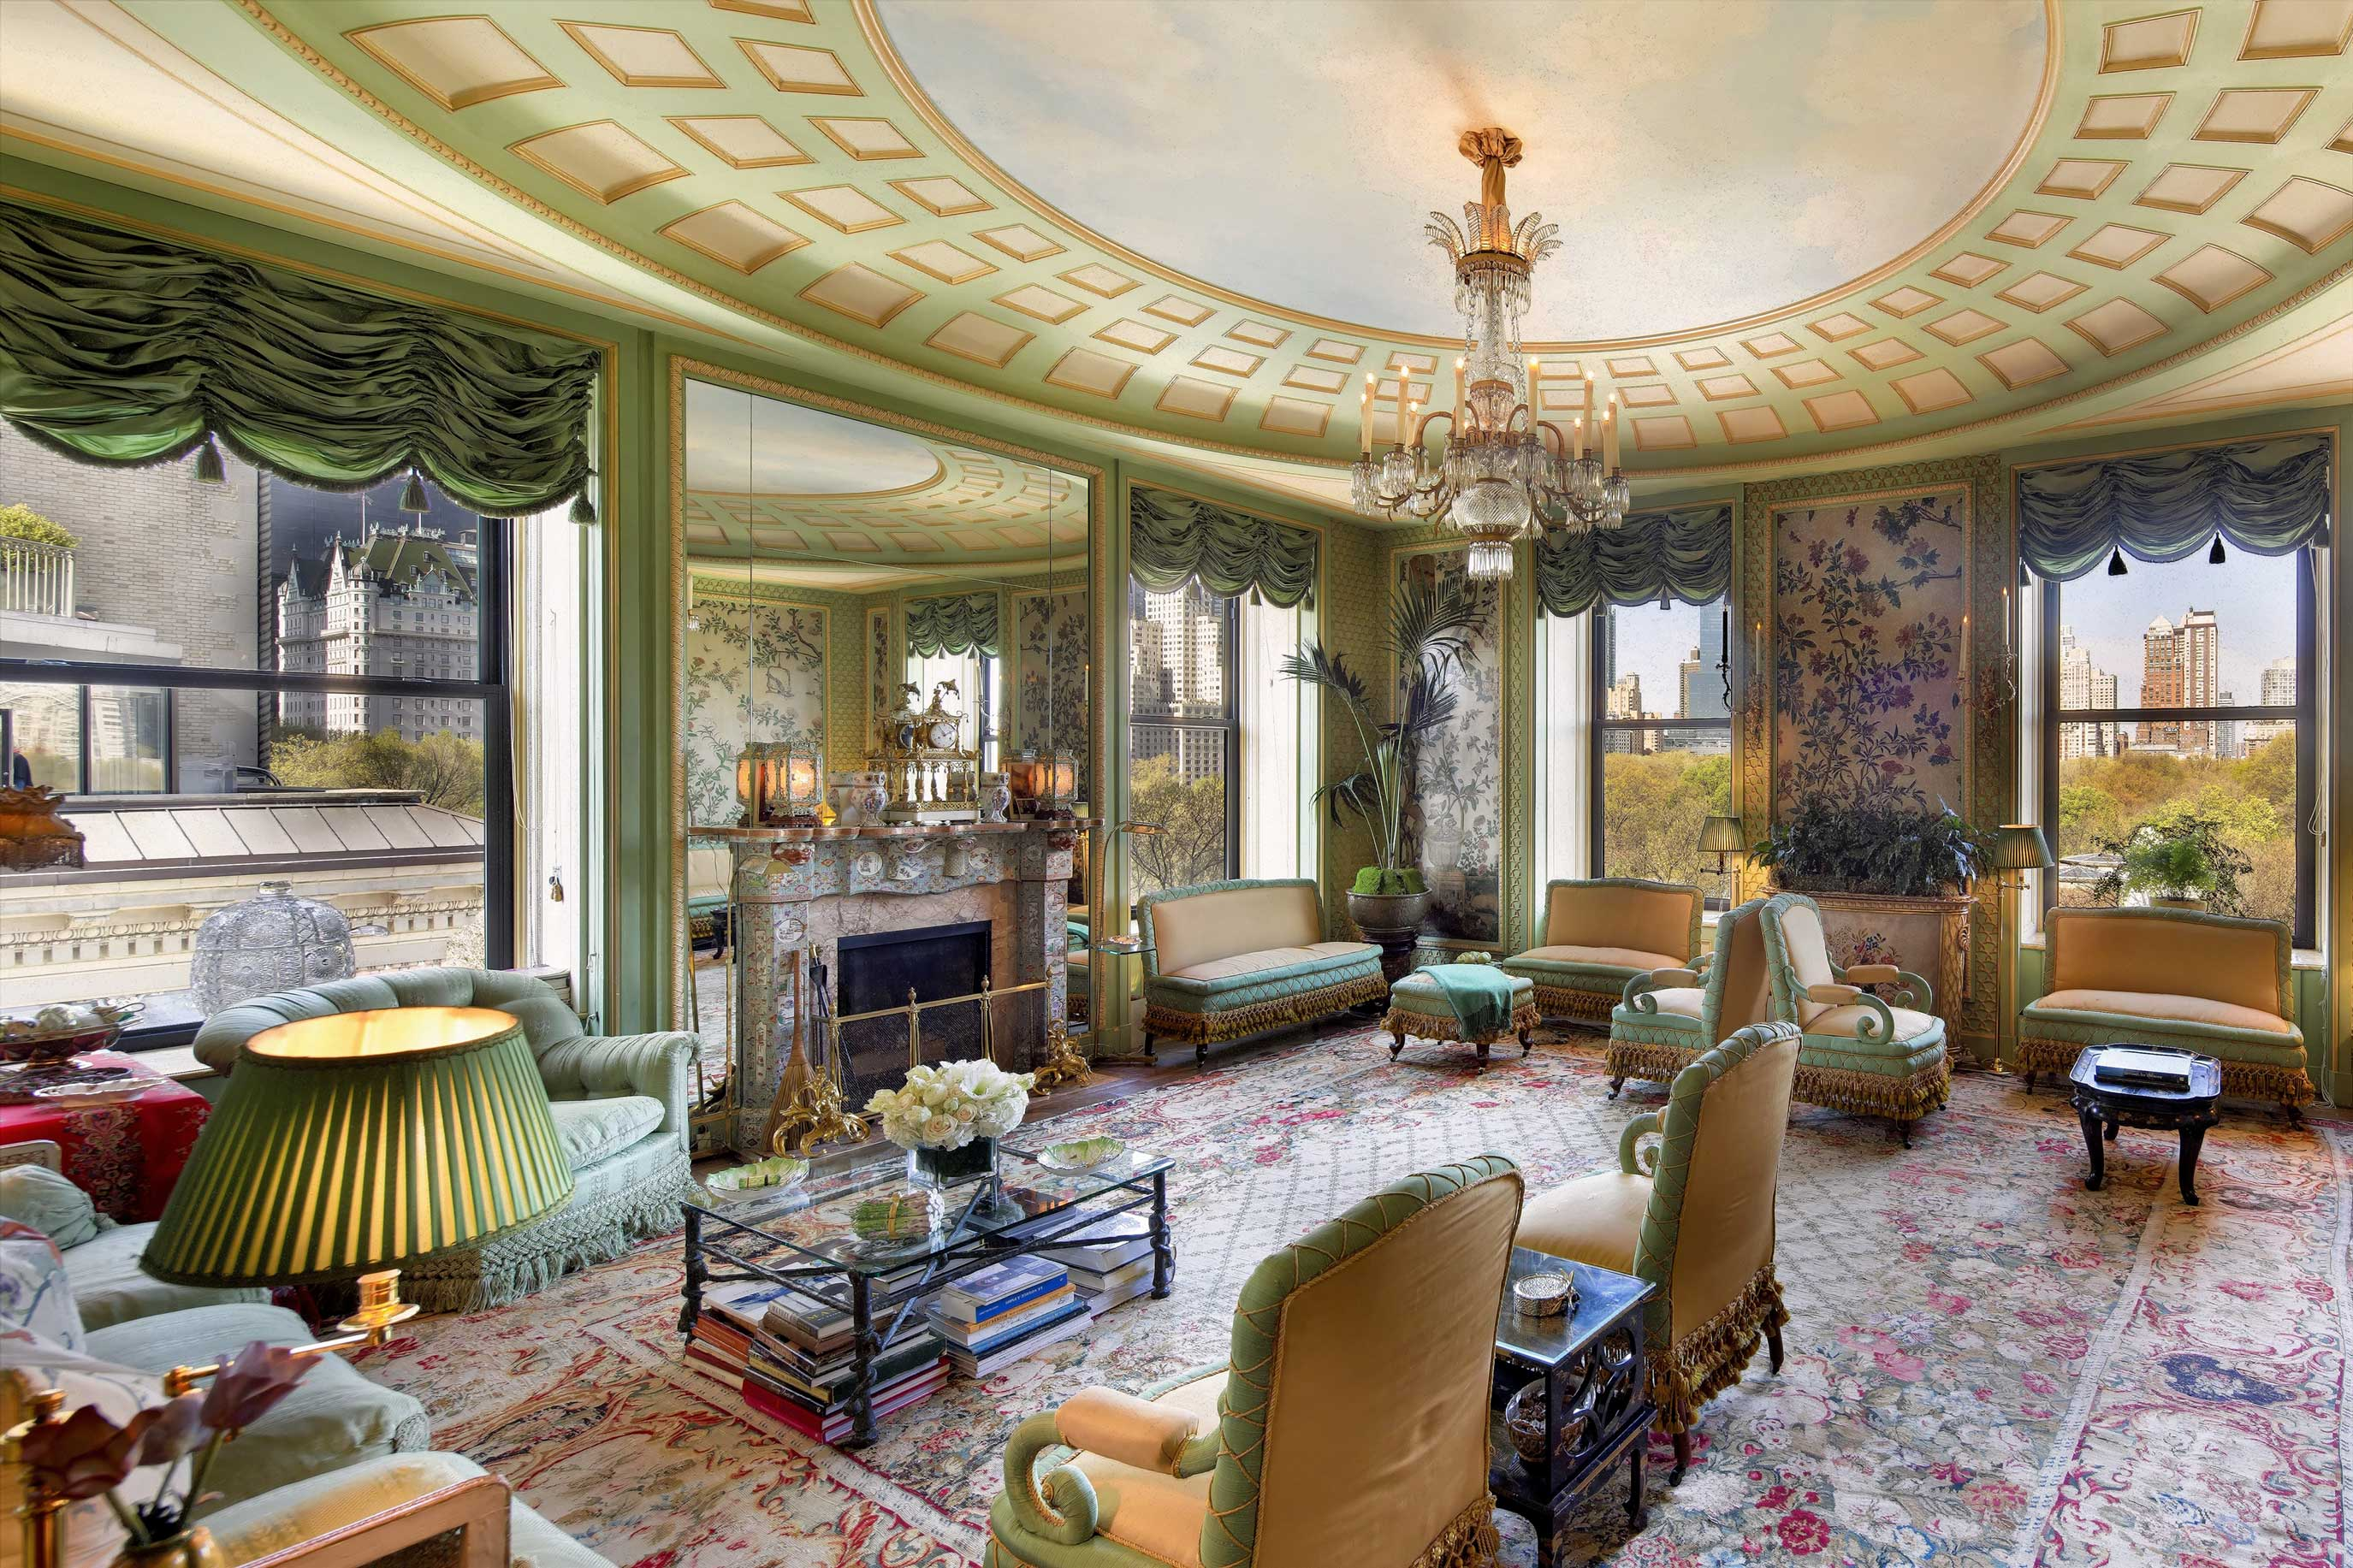 This luxury Fifth Avenue duplex is the creation of the celebrated New York architect Rosario Candela (1890–1953). A subtle shade of green sets the tone in the grand living room, which displays the architect's signature style: high, decorative ceilings, oversized windows, and ornate moldings.